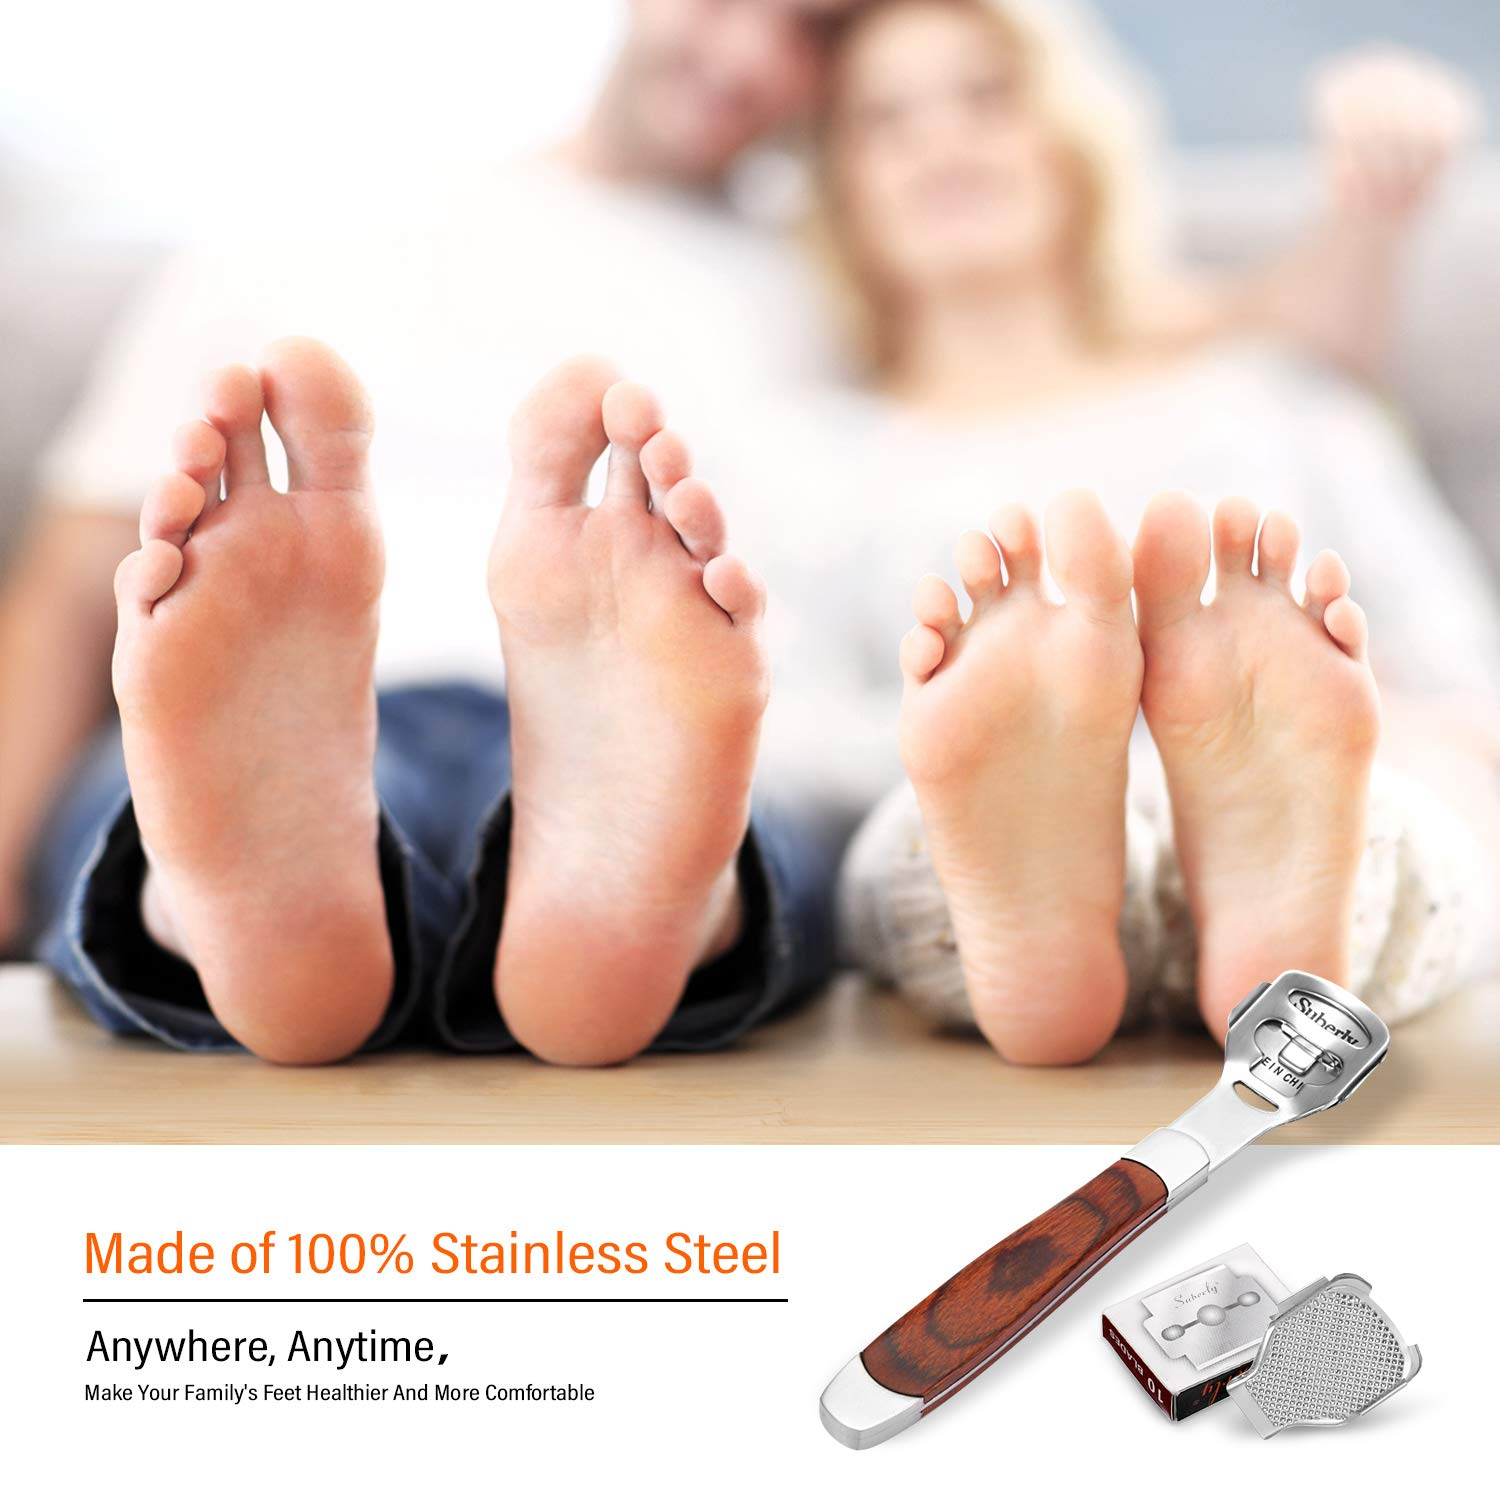 Stainless steel tool for removing hard skin from heel (10 blades)